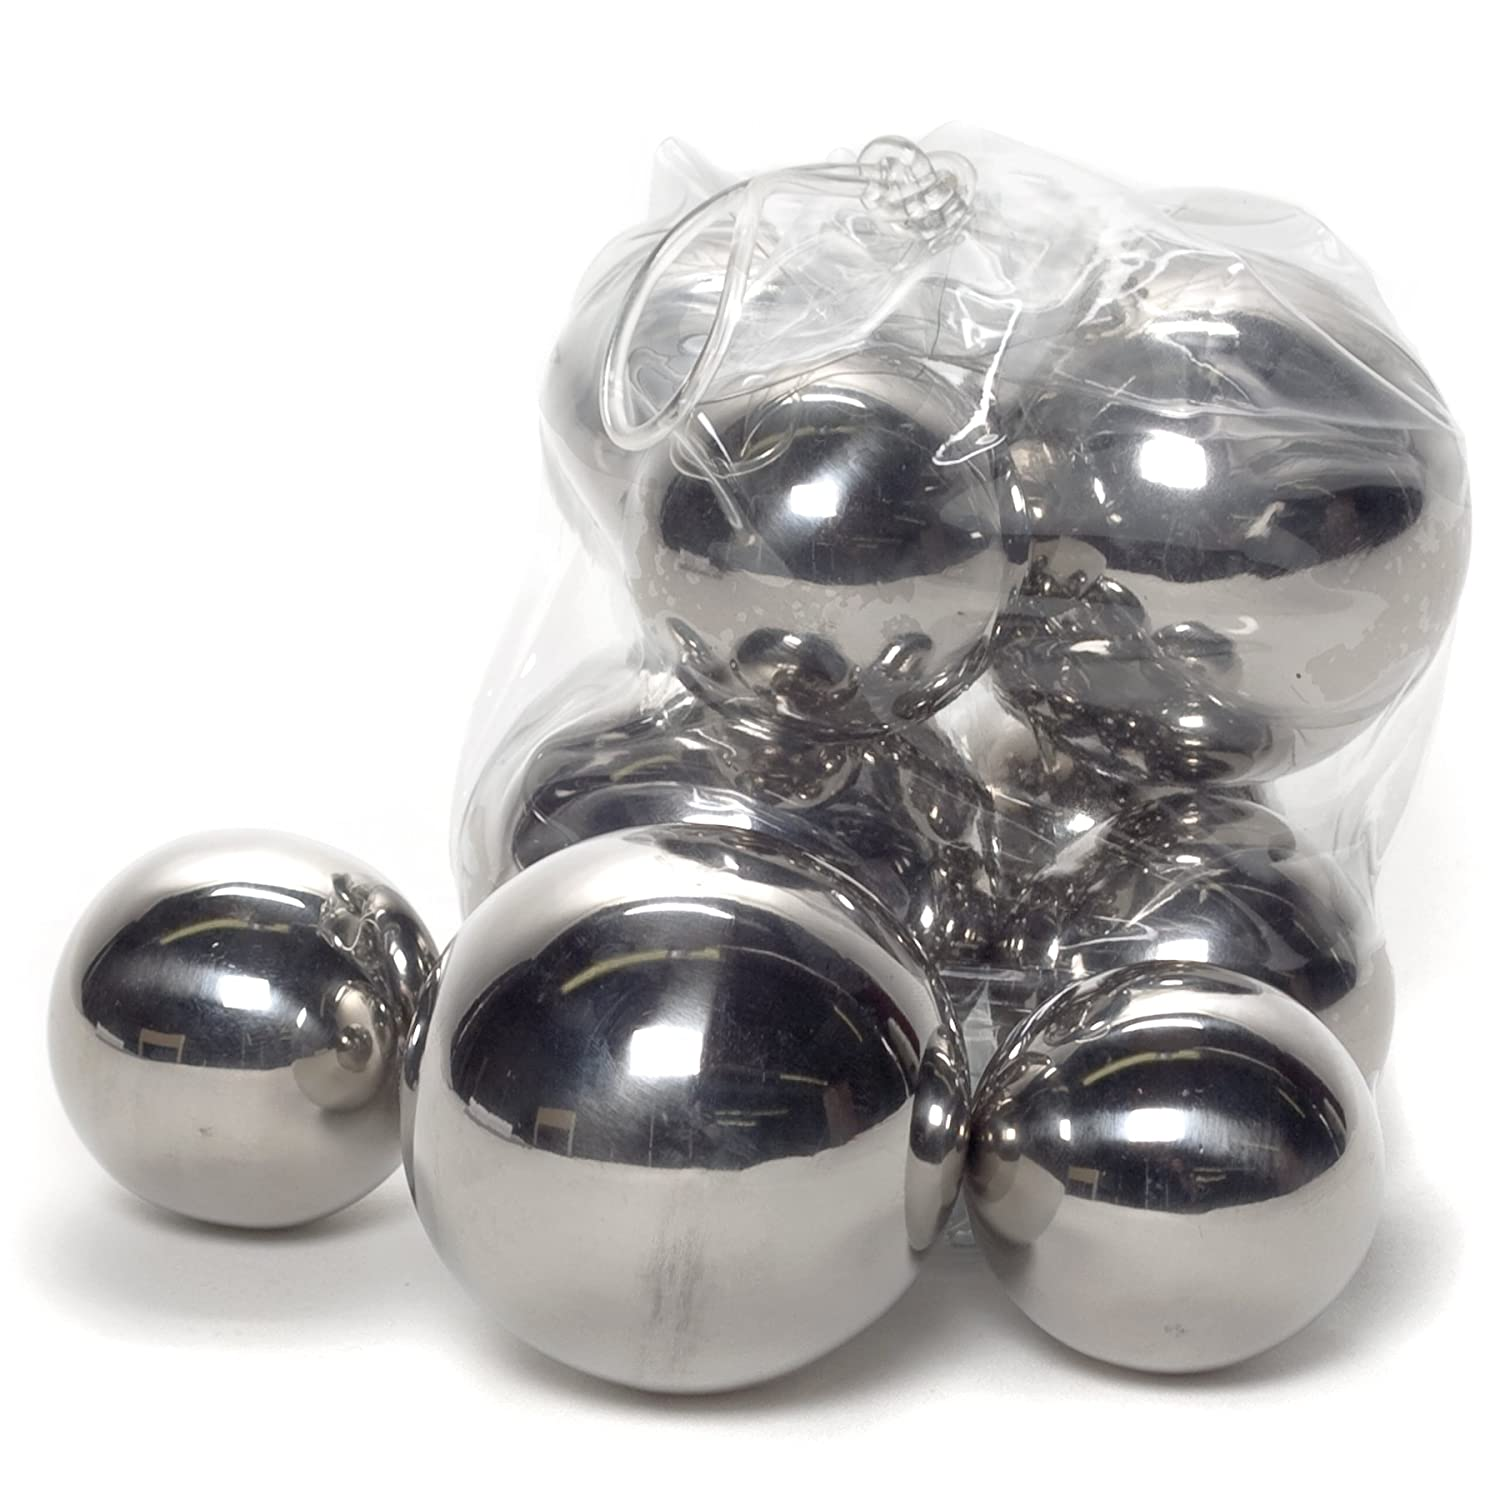 Amazon.com: Abbott Collection Assorted Stainless Steel Decorative ...